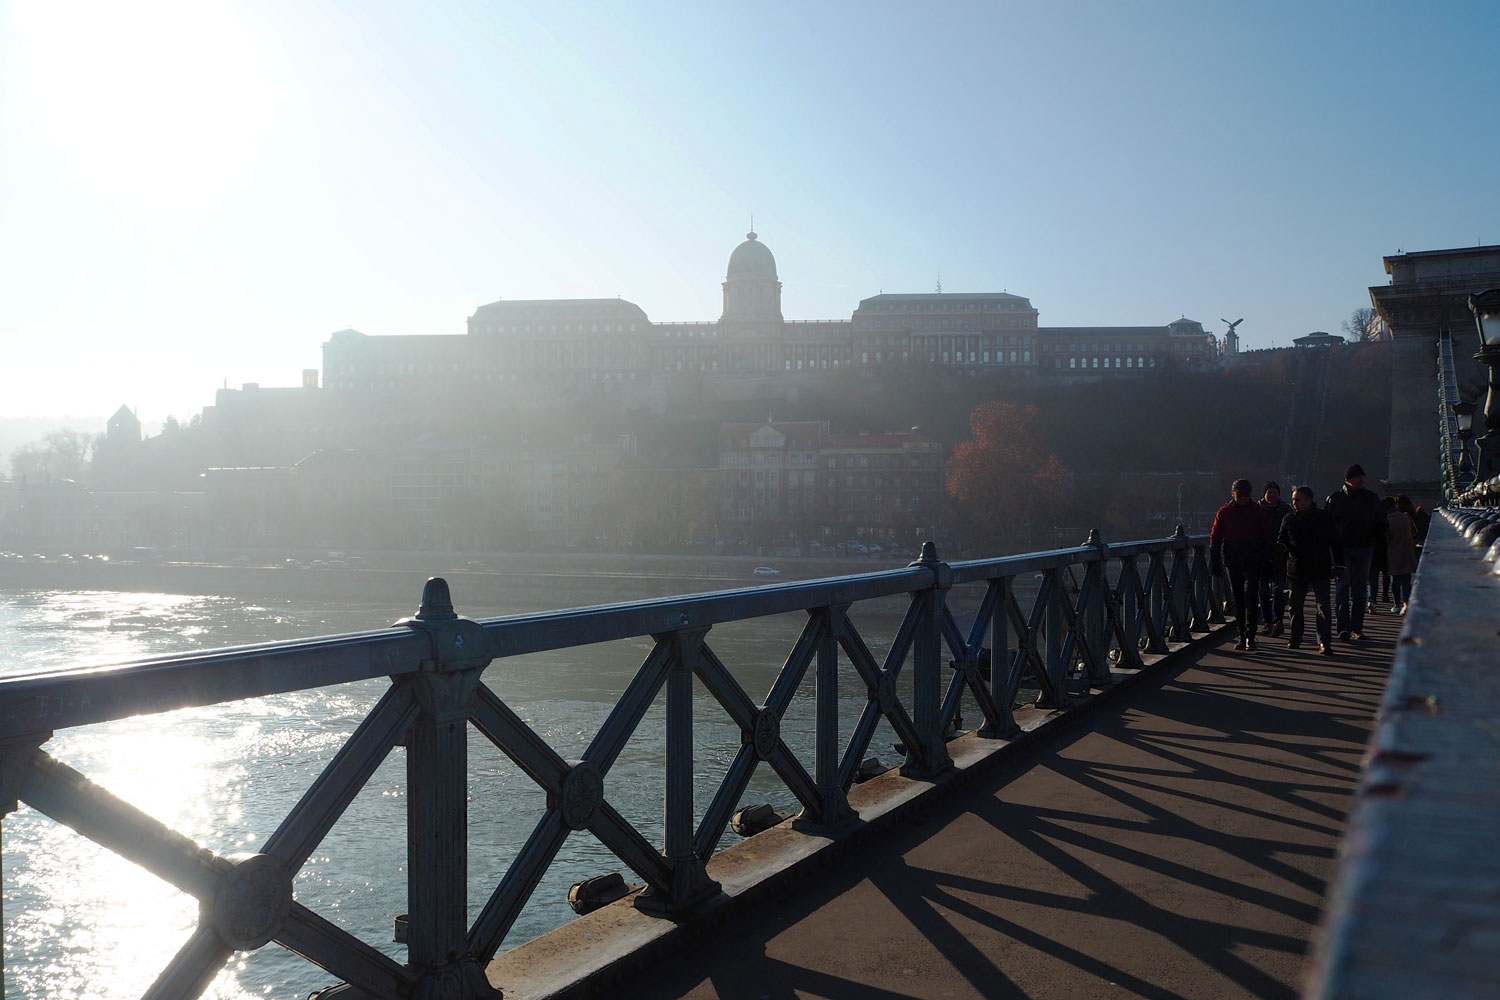 chain-bridge-budapest-travel-blog-review-zoe-newlove